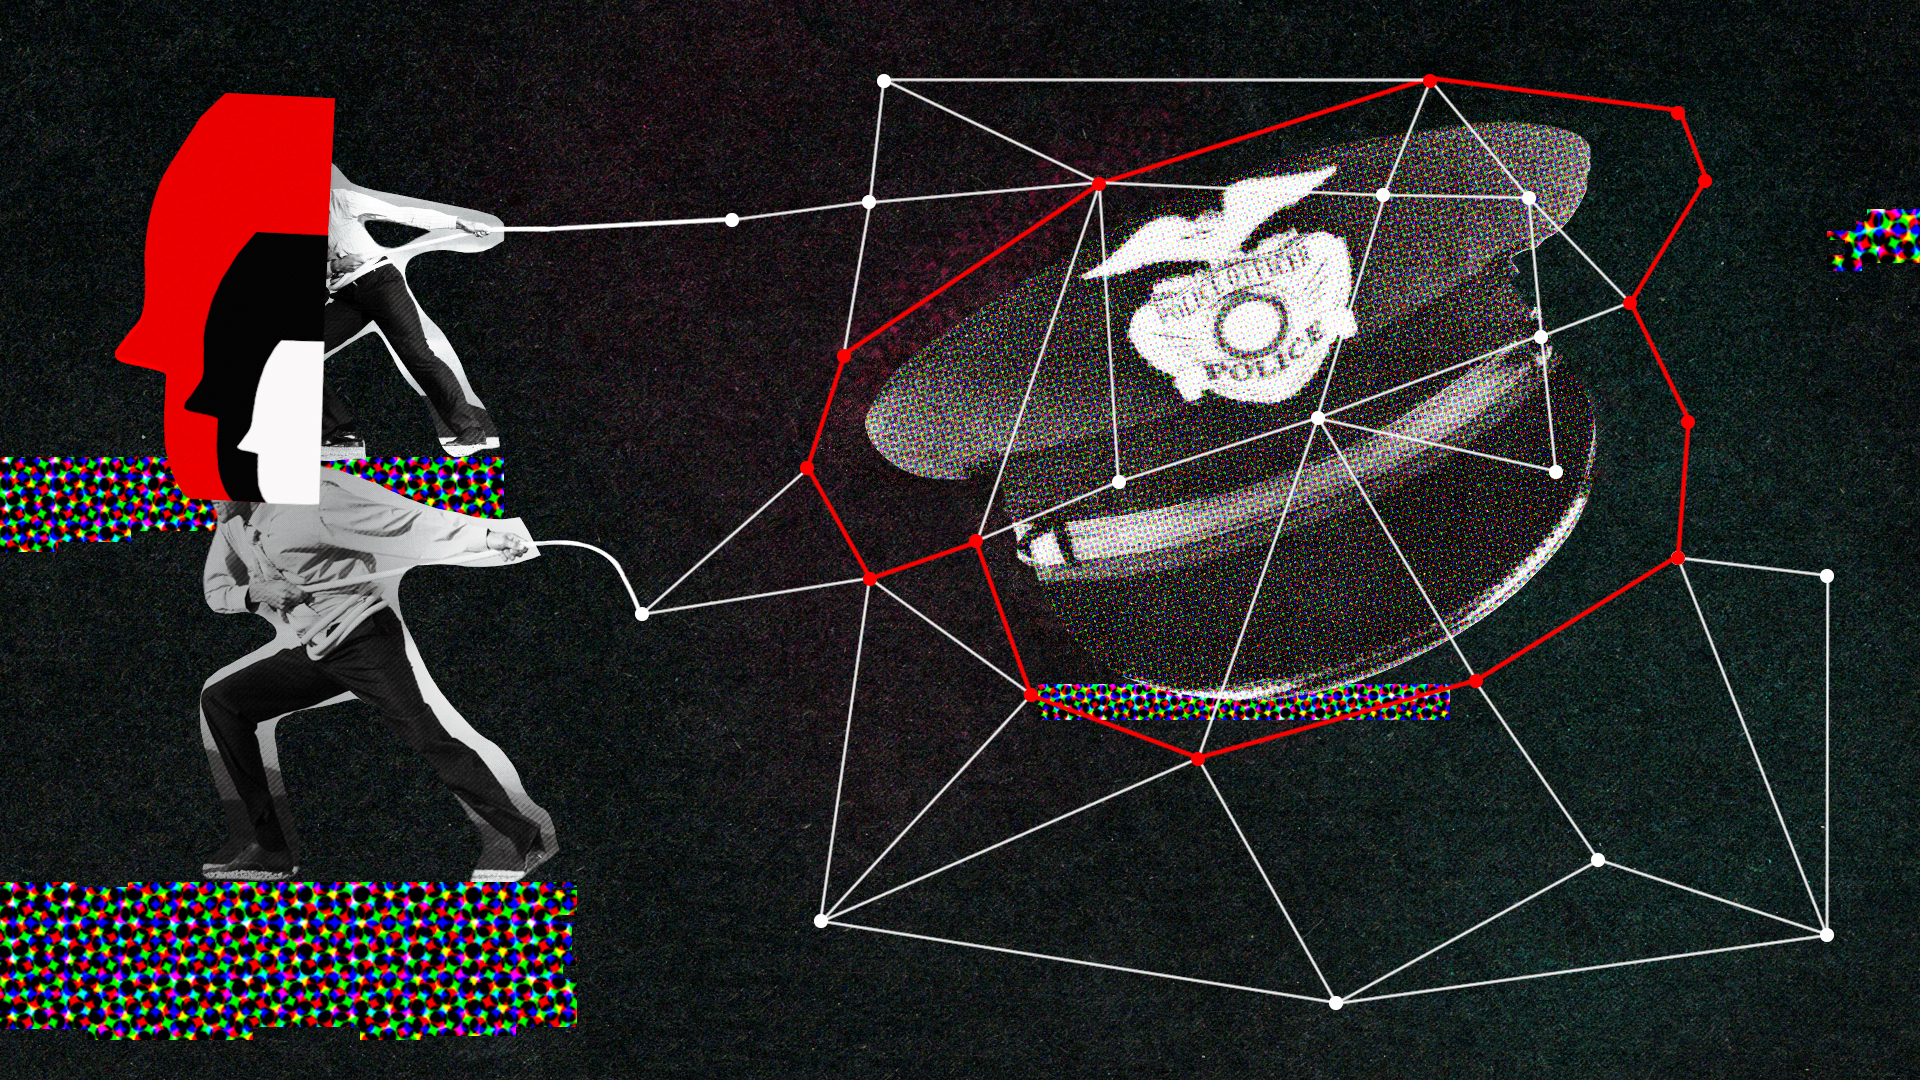 conceptual illustration showing a police hat with overlapped nueral network that's being dismantled.